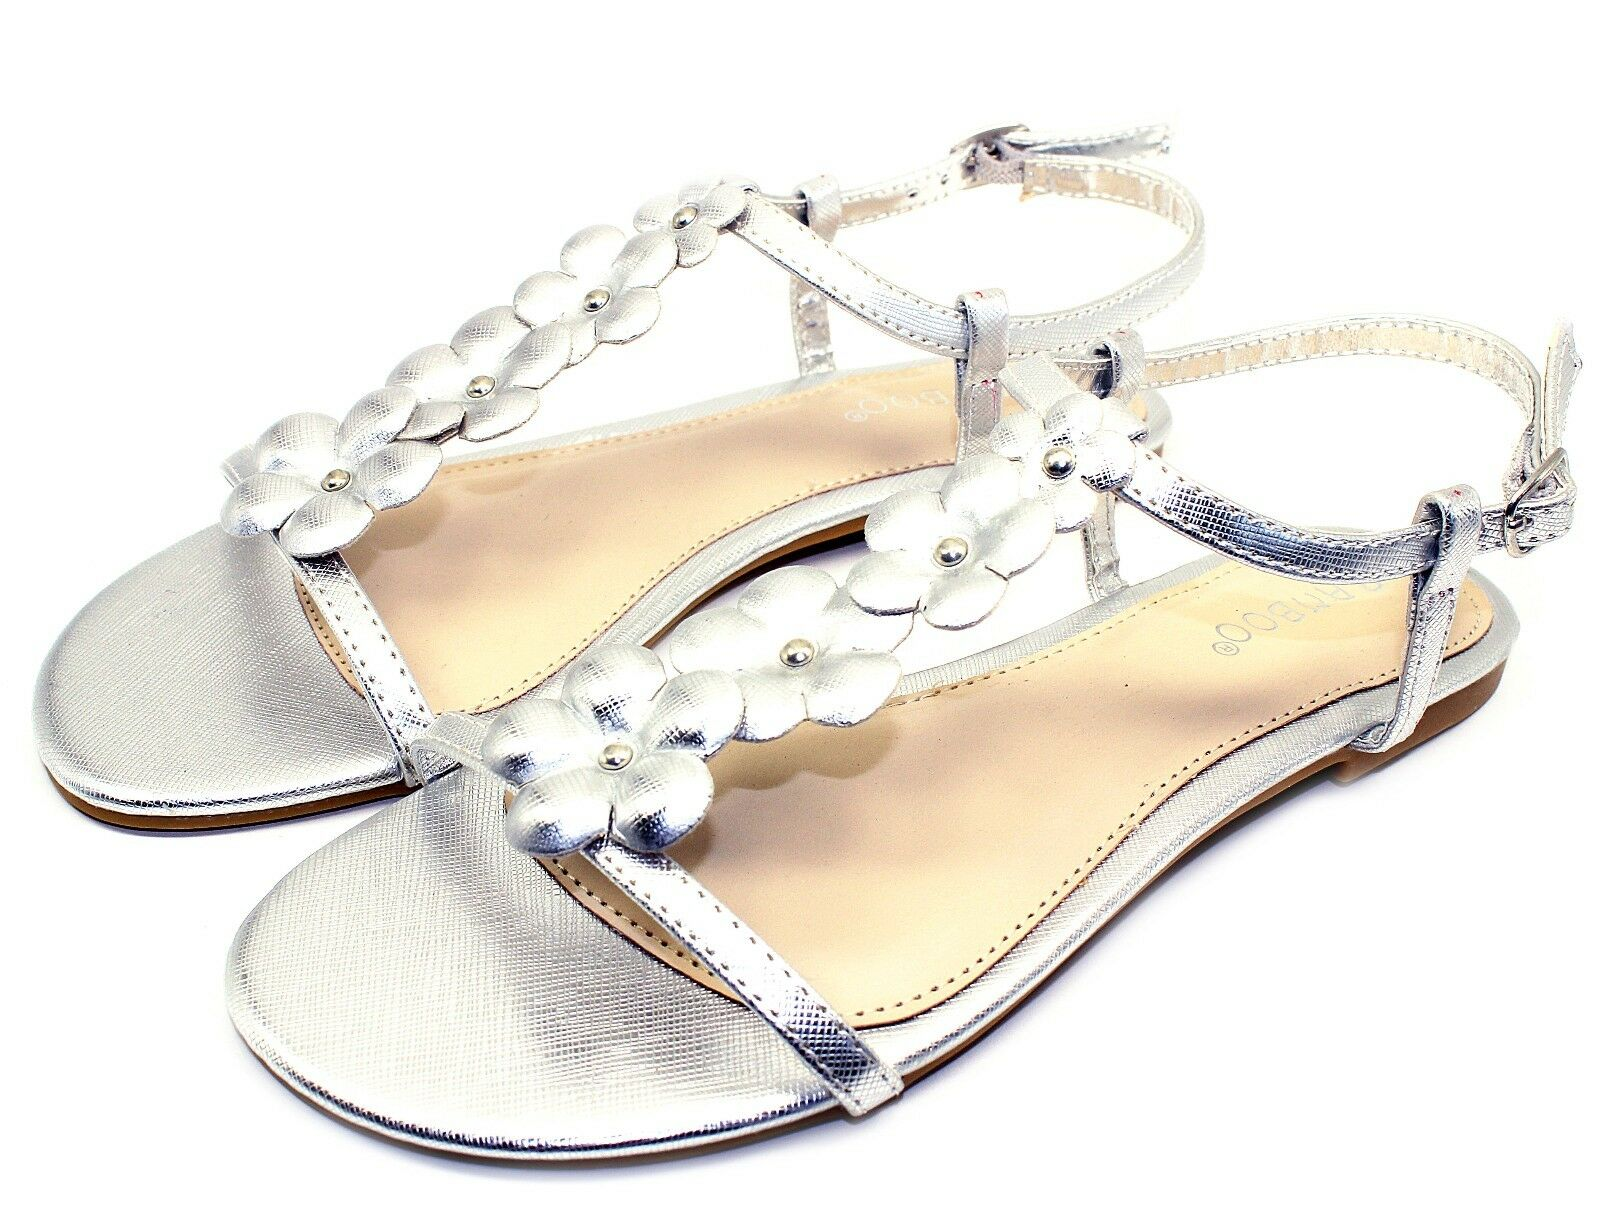 Man's/Woman's CALEB-10 New Flats Sandals Buckle Shoes Gladiator Party Beach Women Shoes Buckle Silver 7 Modern technology Attractive fashion Sales online store WR731 9db494